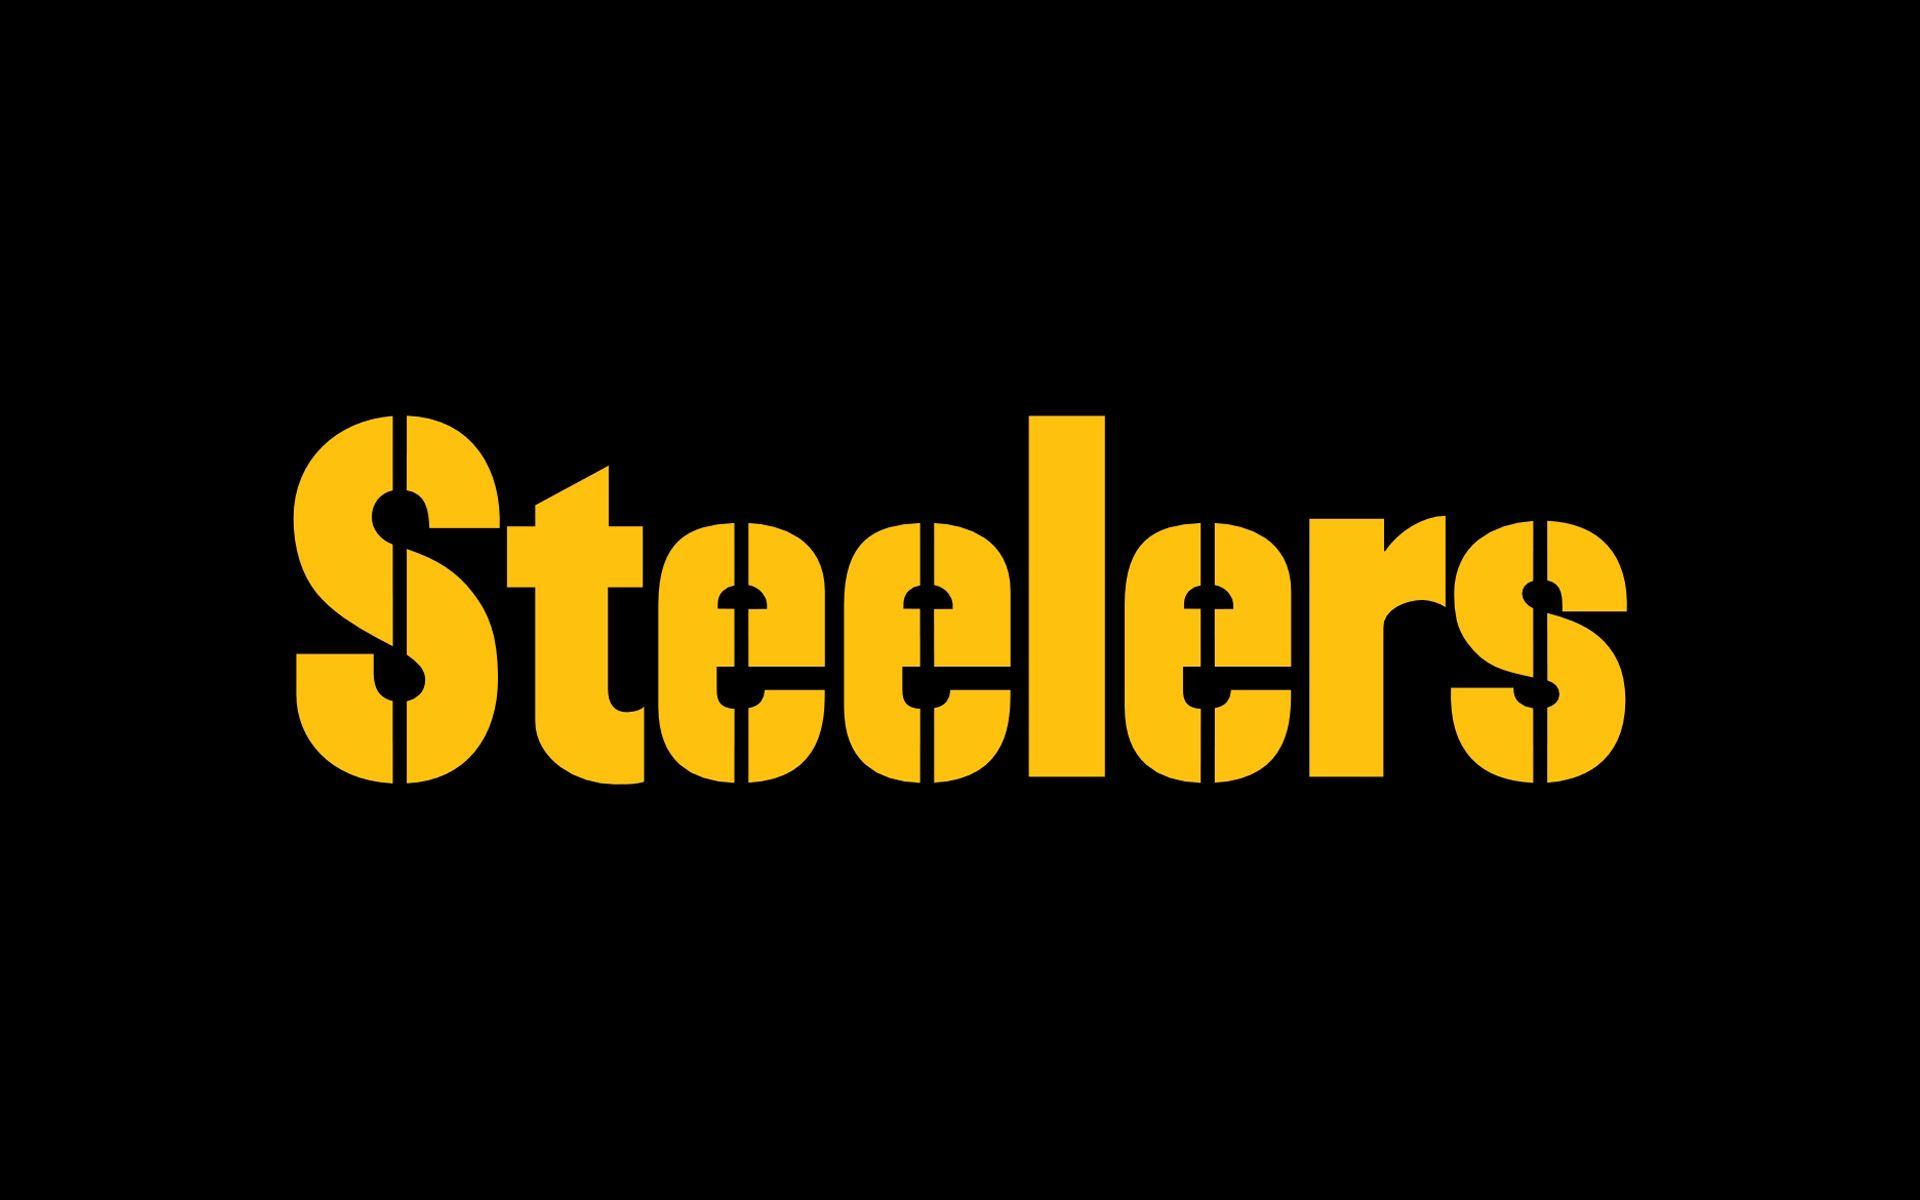 1920x1200 - Steelers Desktop 19